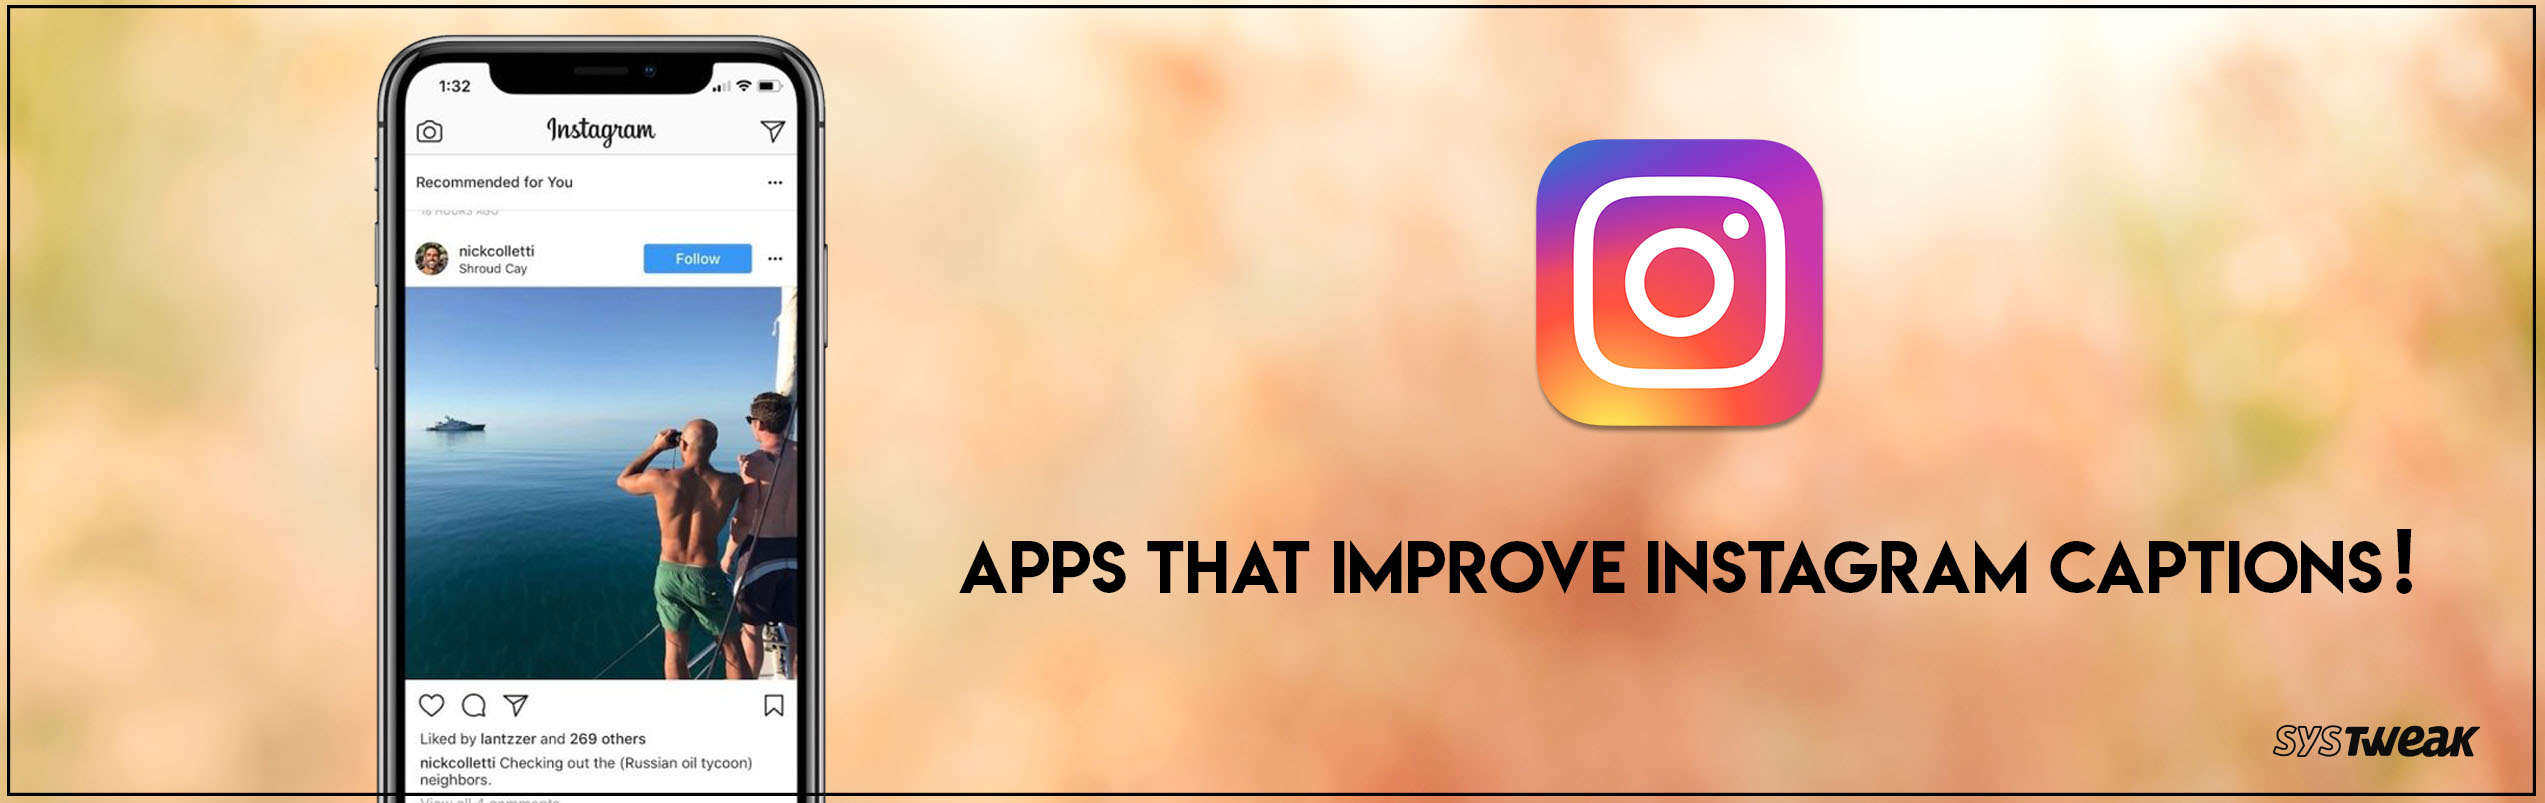 Improve Instagram Captions & Get More Followers!